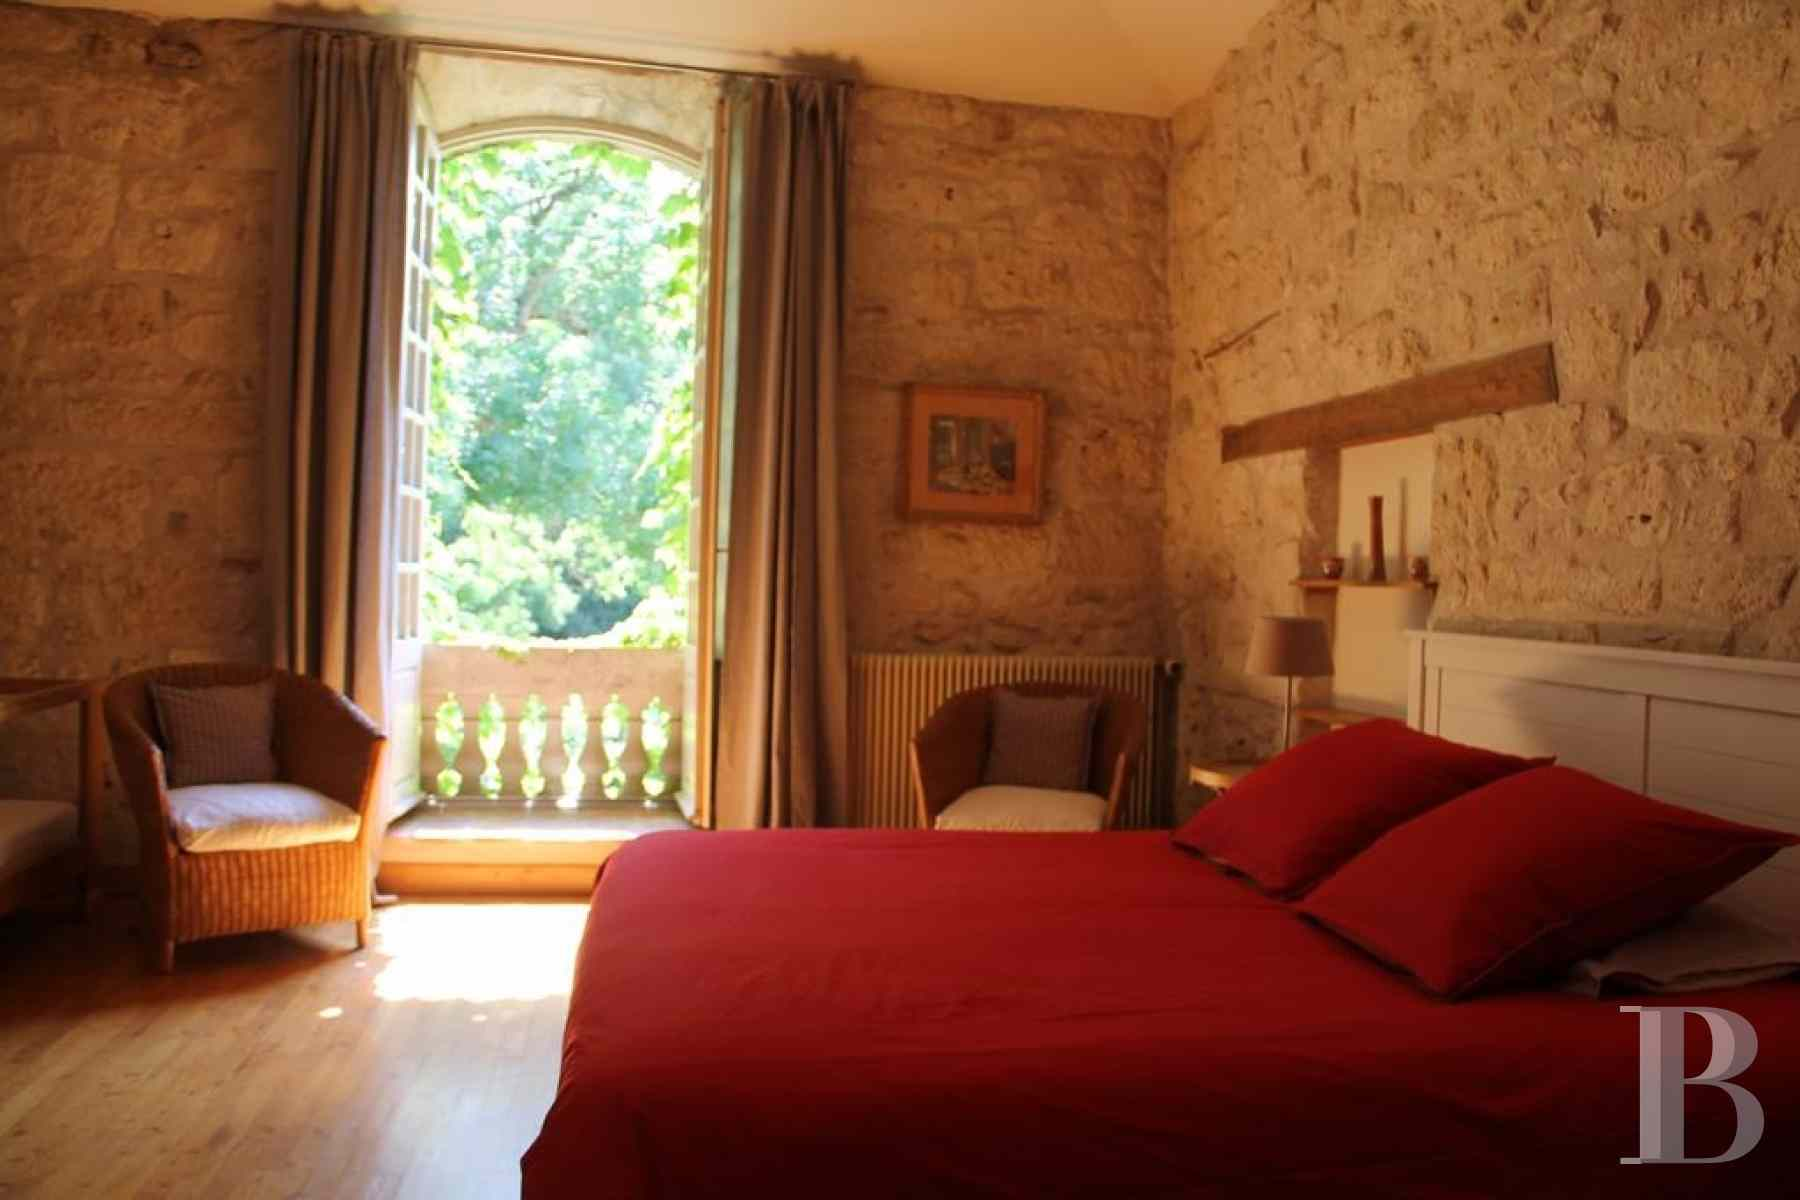 property for sale France aquitaine property 18th - 15 zoom